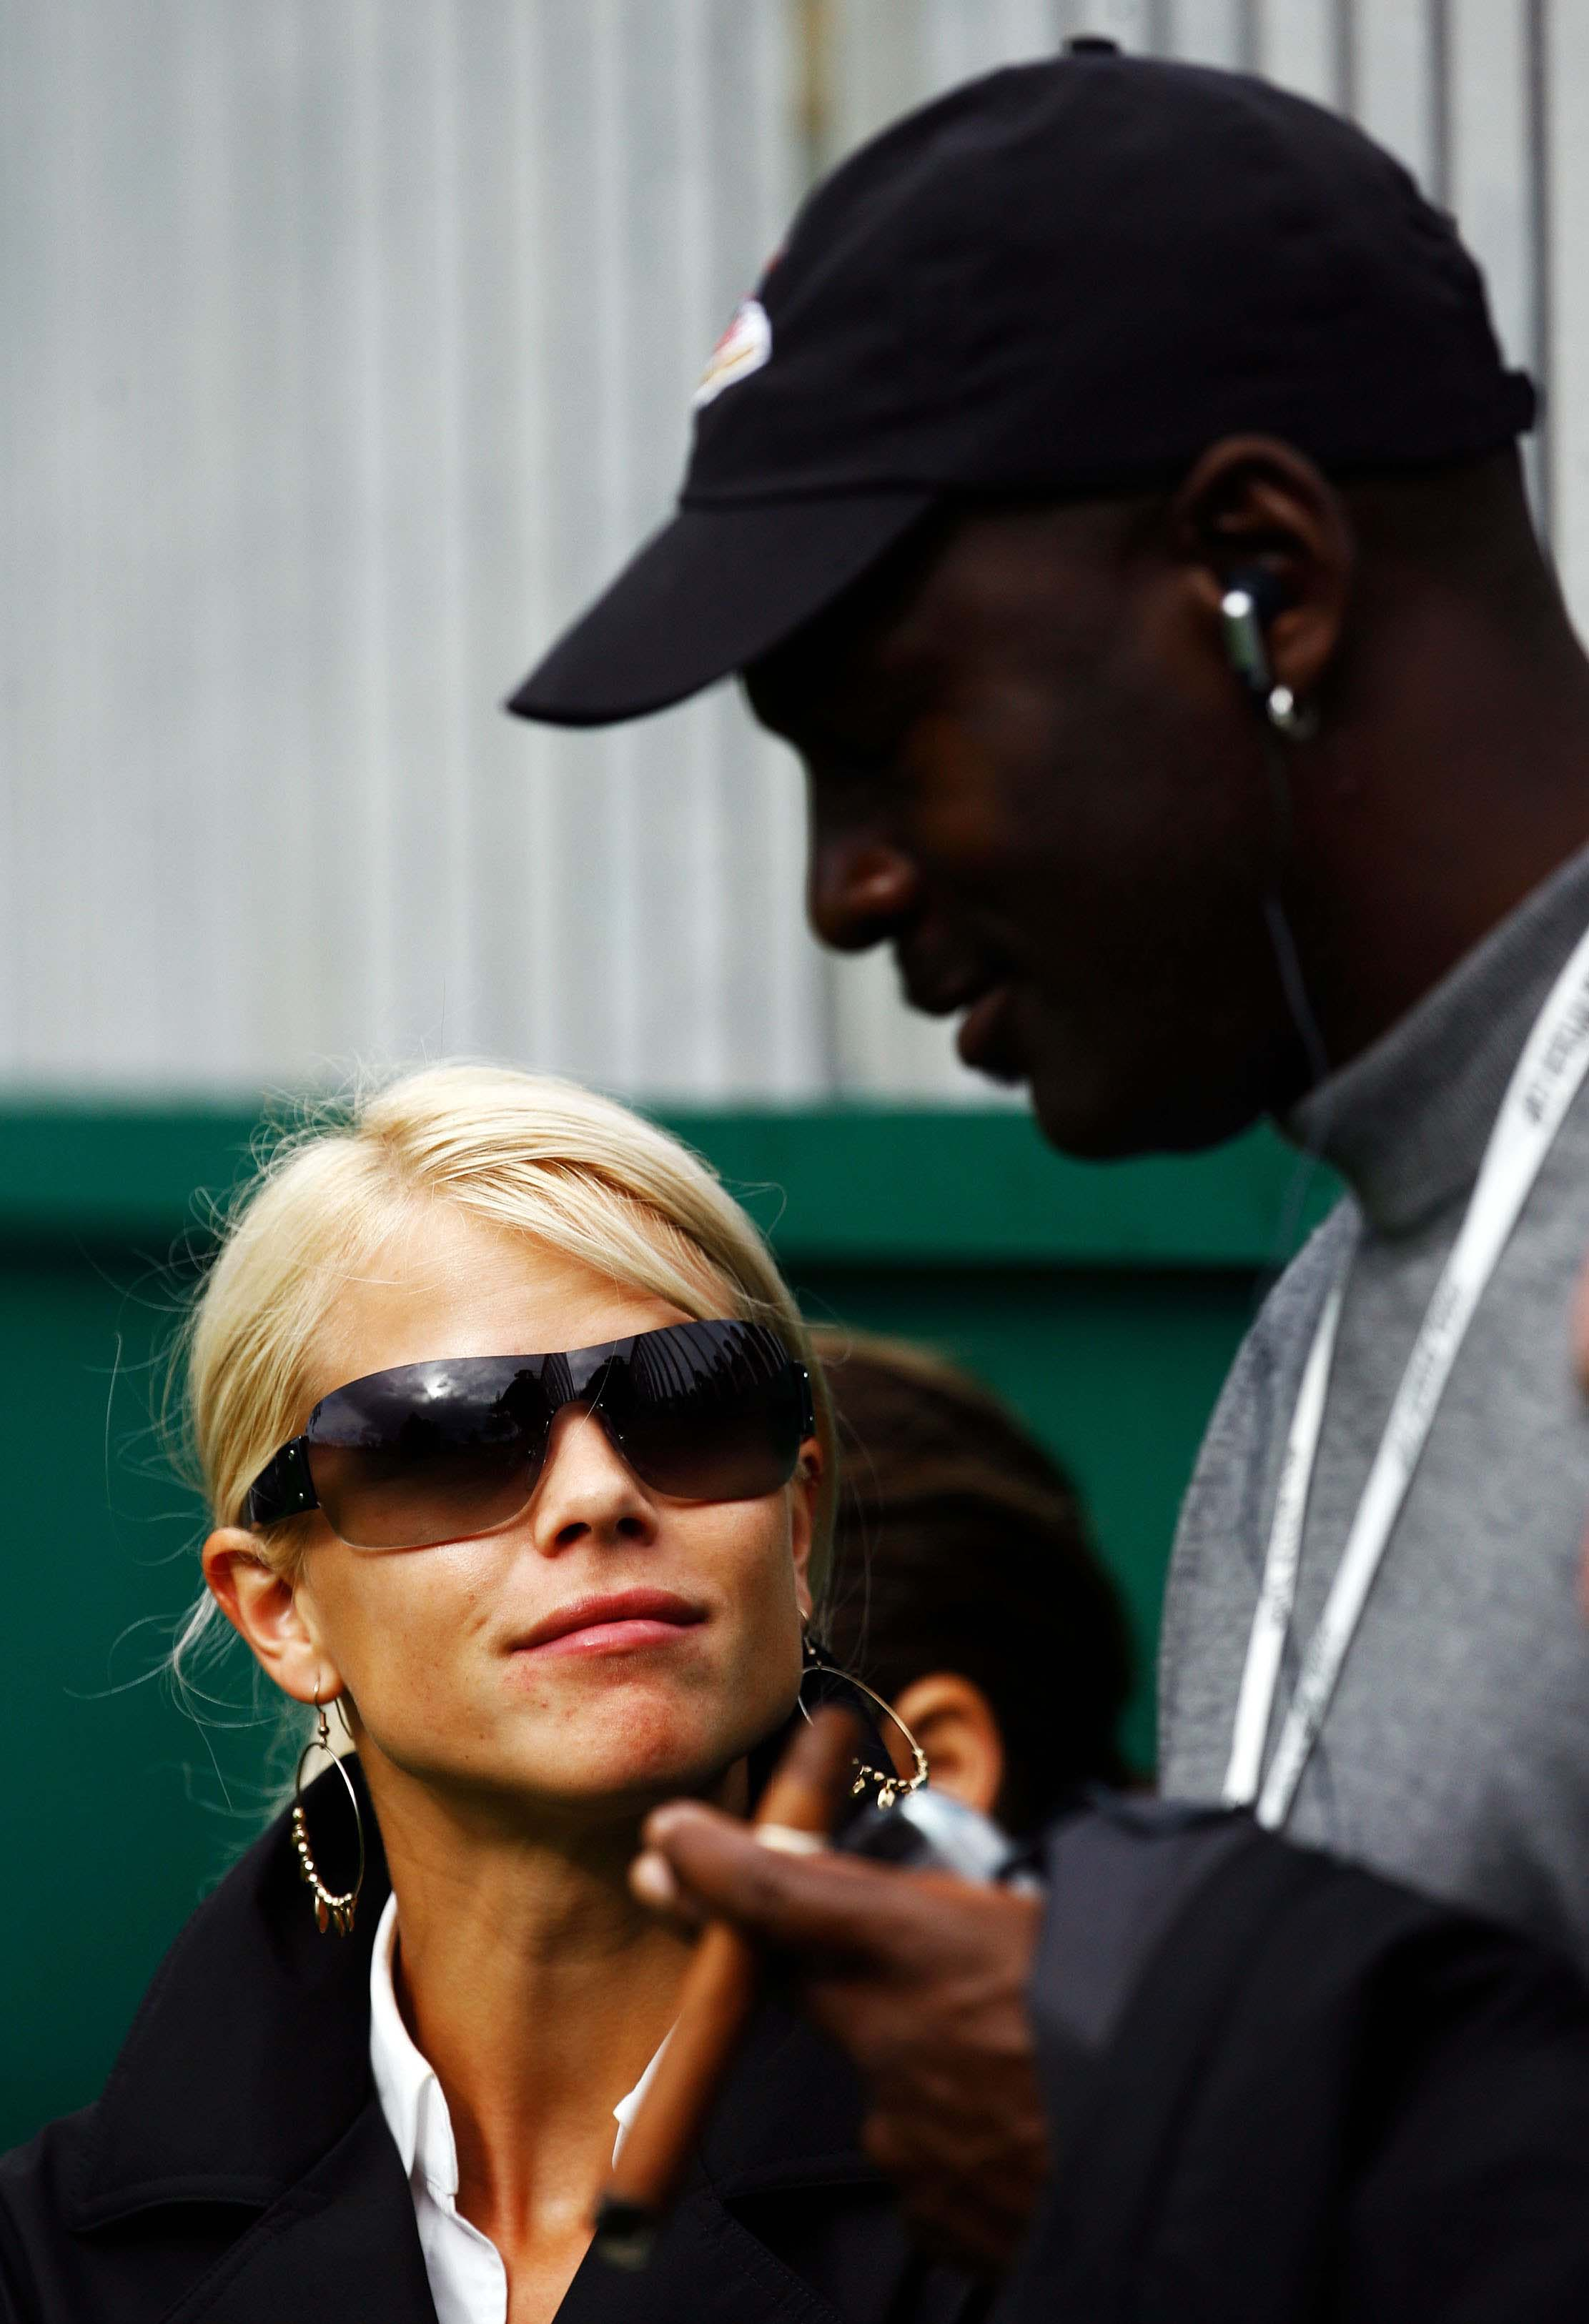 Michael Jordan and Elin Nordegren